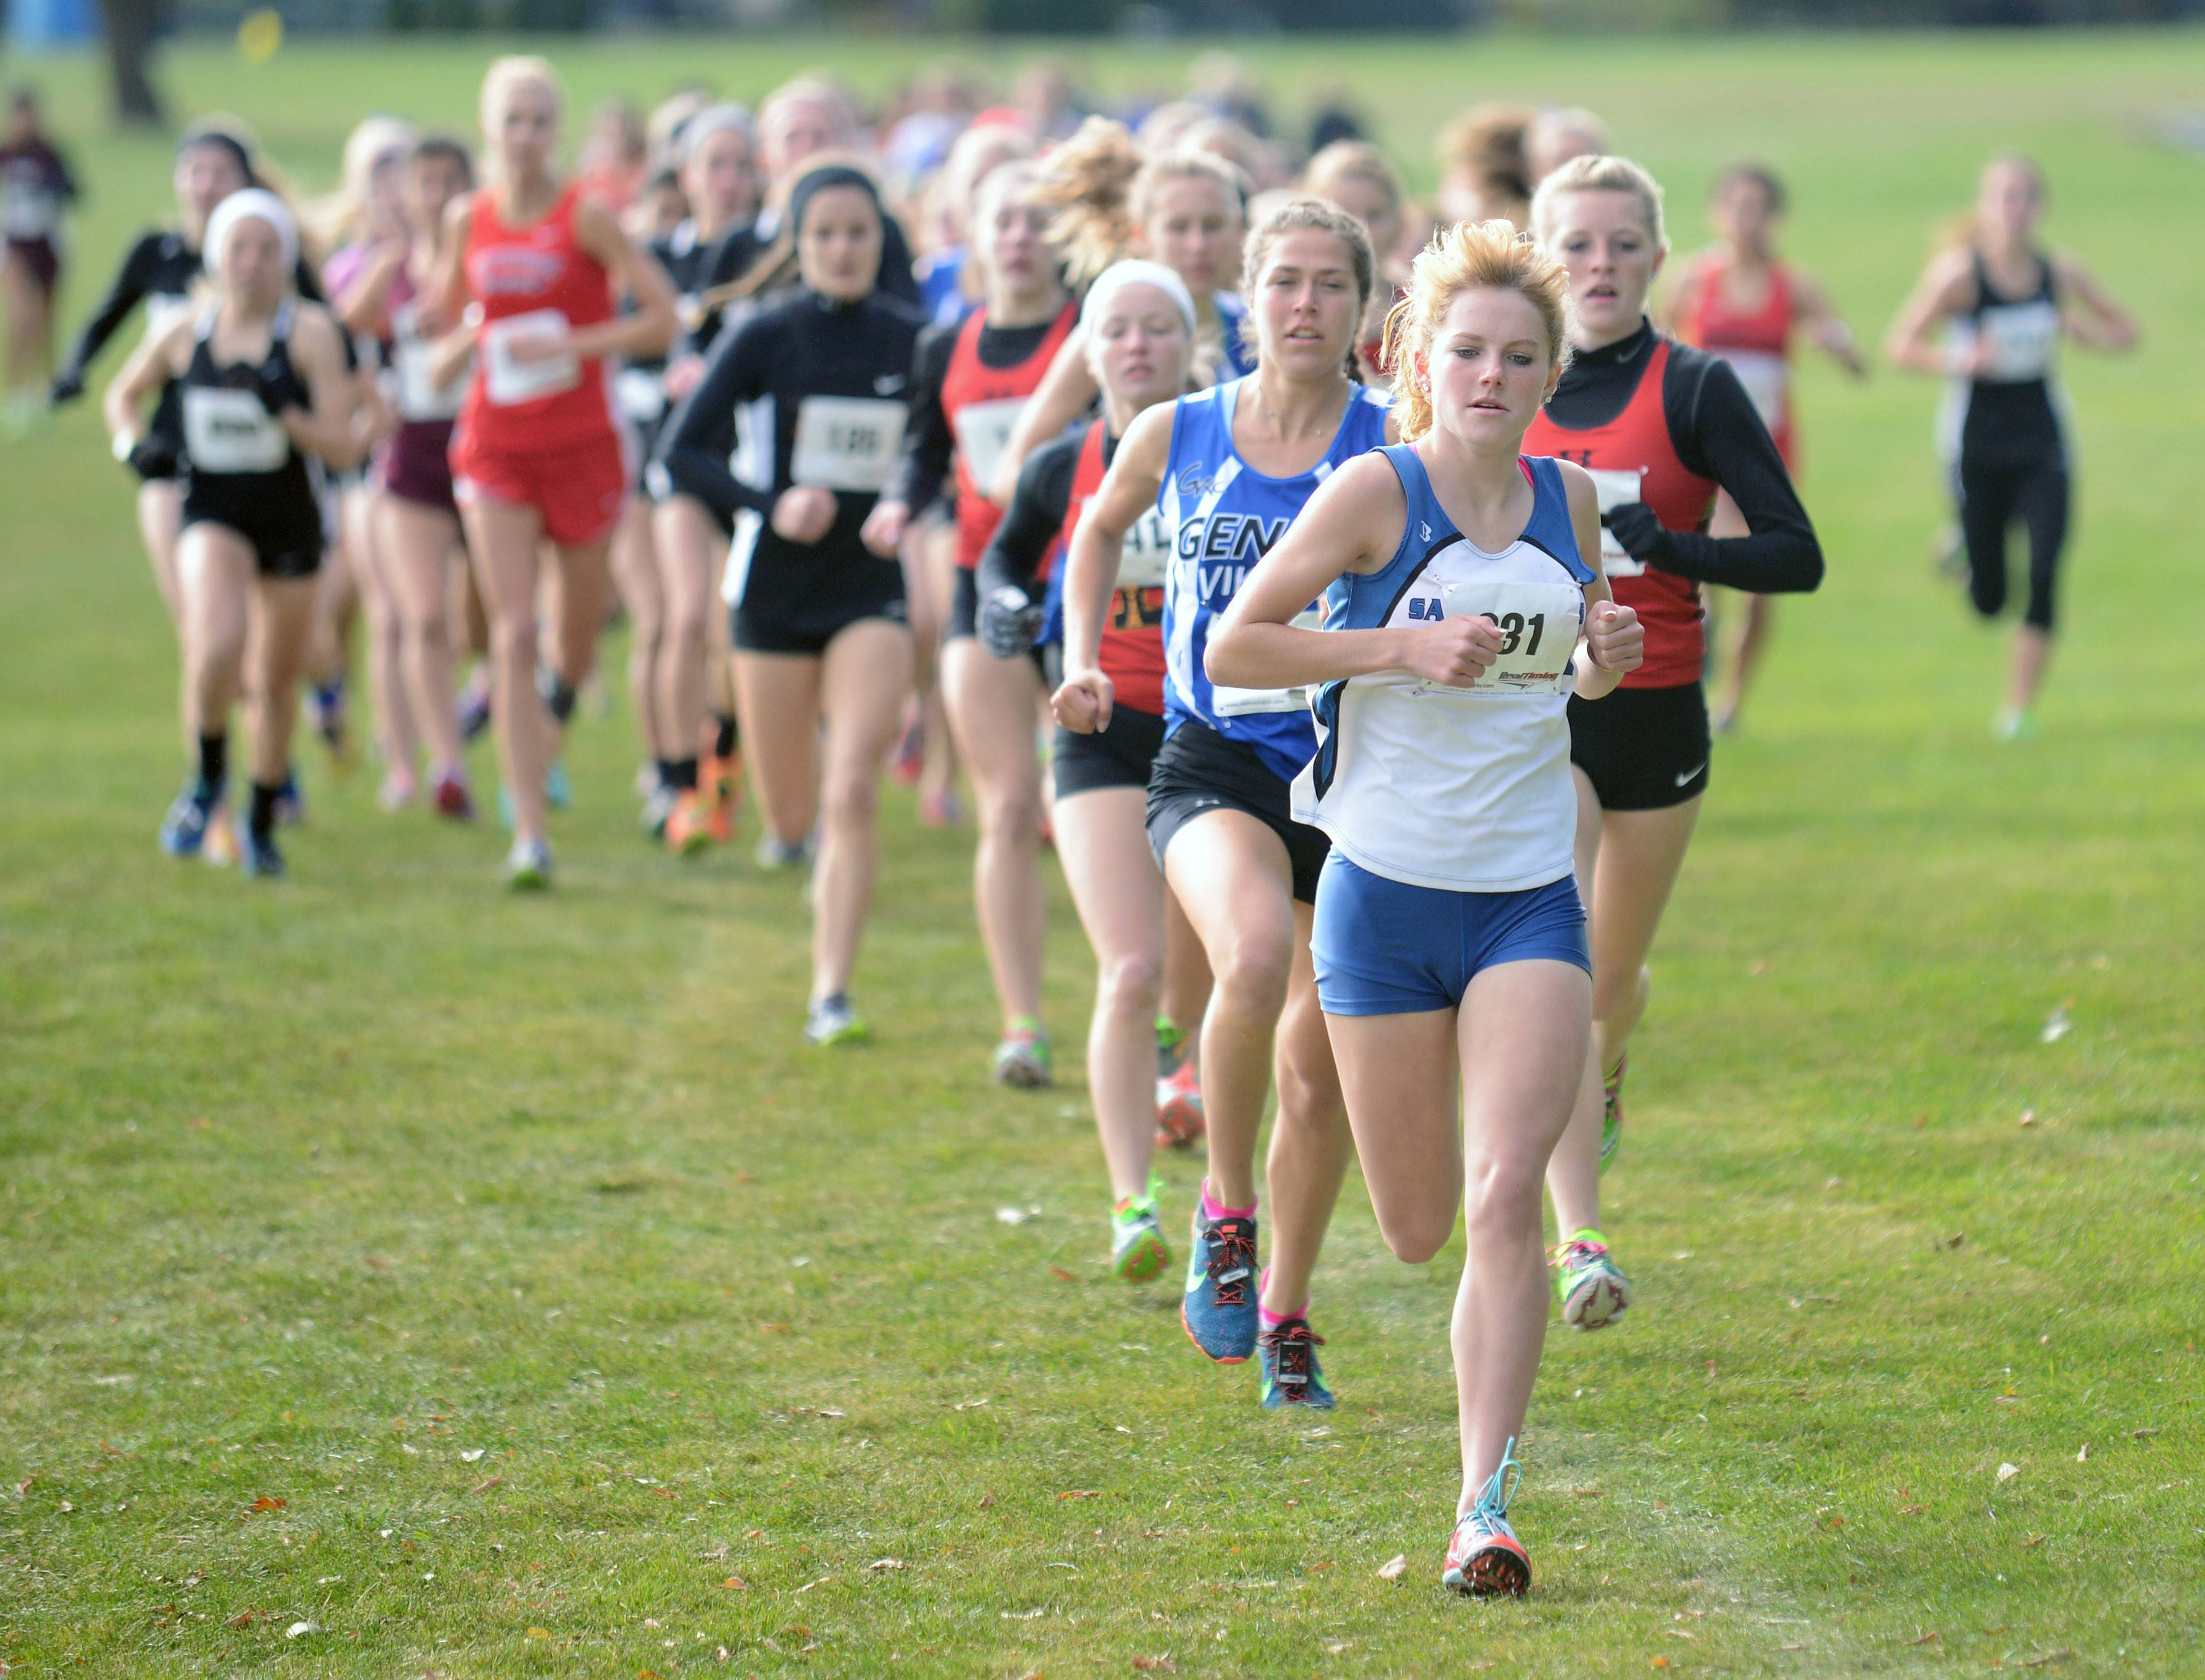 St. Charles North's Audrey Ernst leads the girls varsity race early in the Upstate Eight cross country meet at Sunrise Park in Bartlett Saturday.